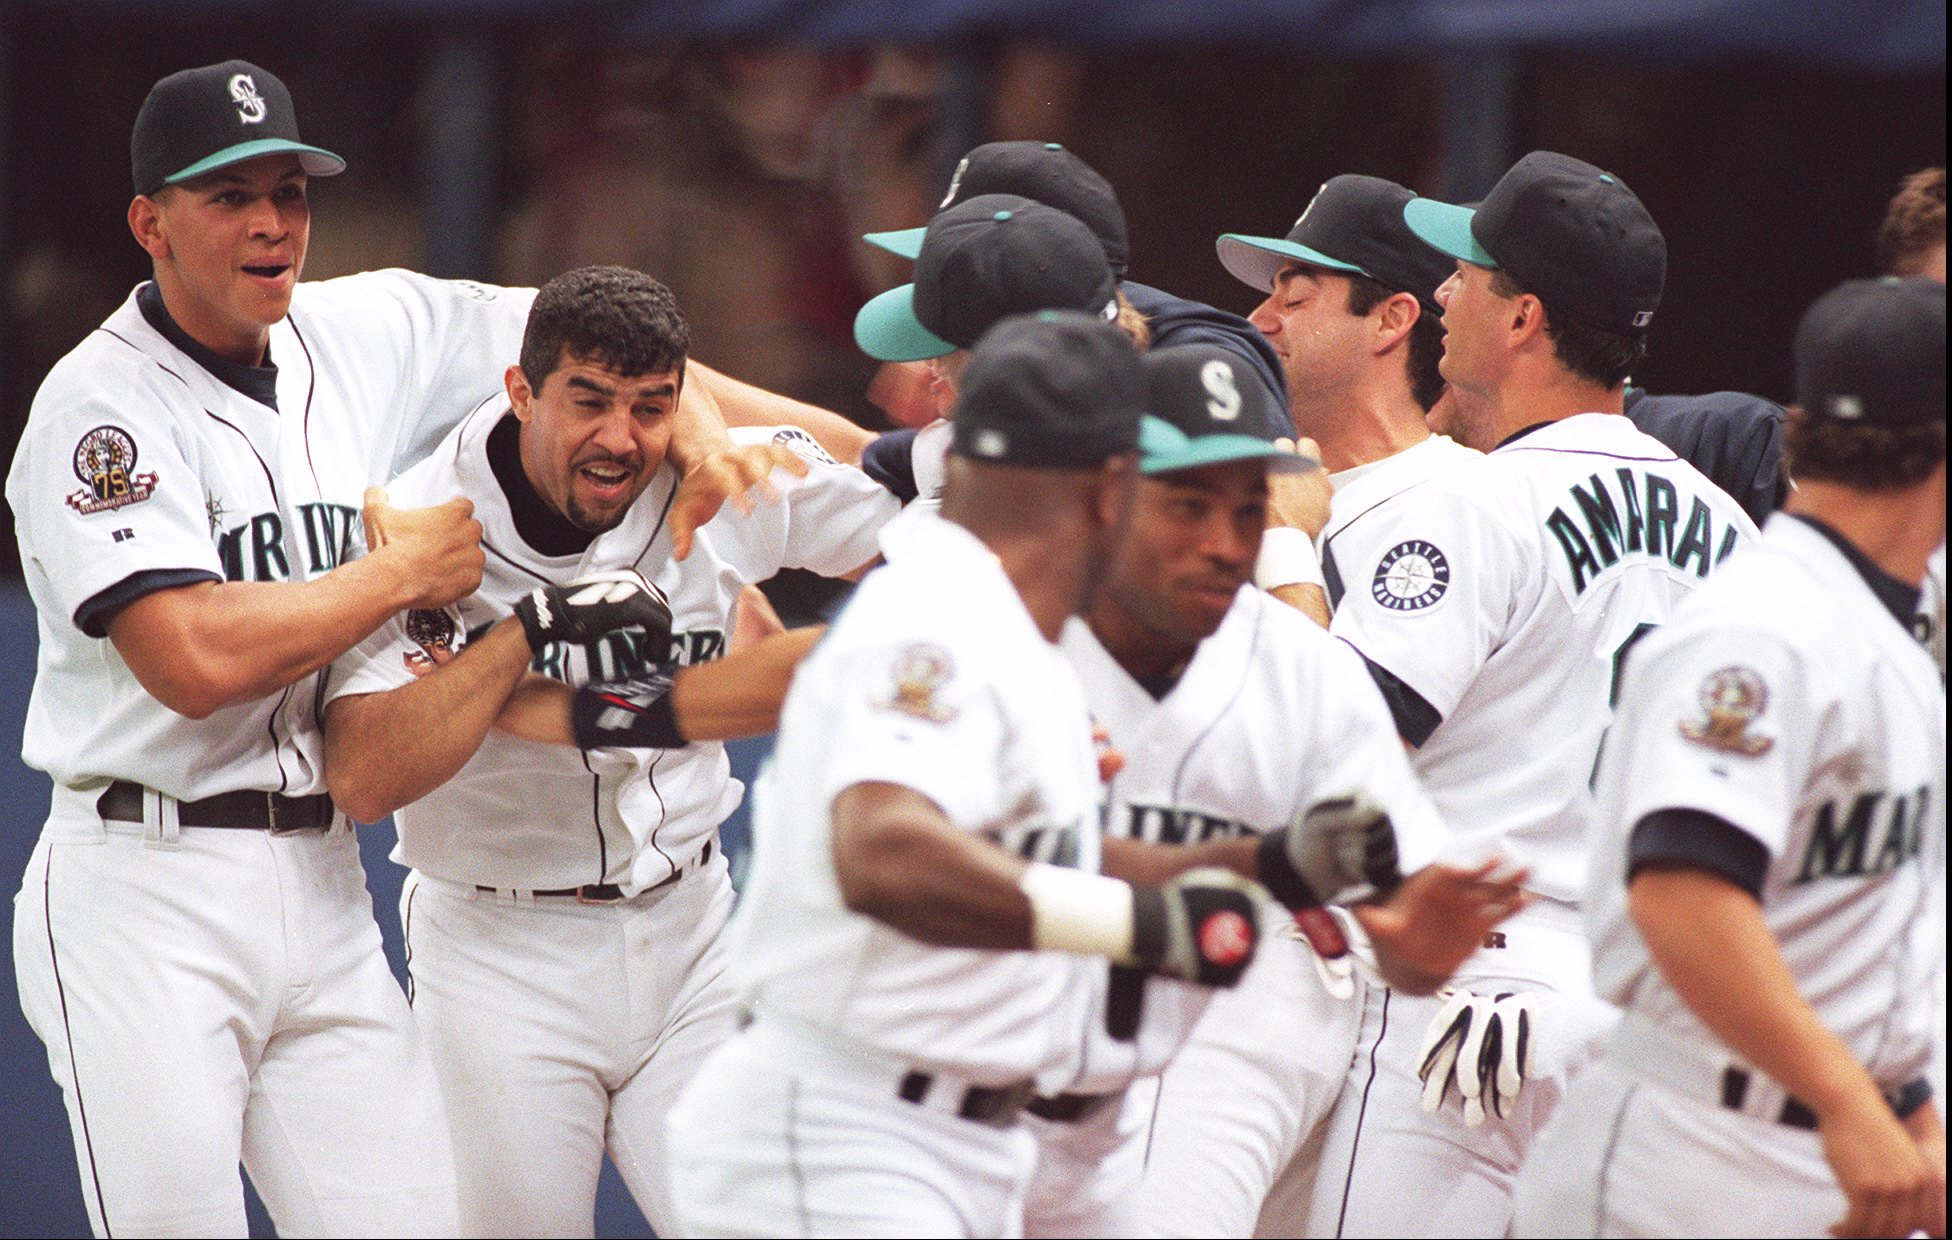 AlexRodriguez, in happier times with the Mariners in the 1995 one-game playoff against California when Luis Sojo was the hero. / Seattle Mariners